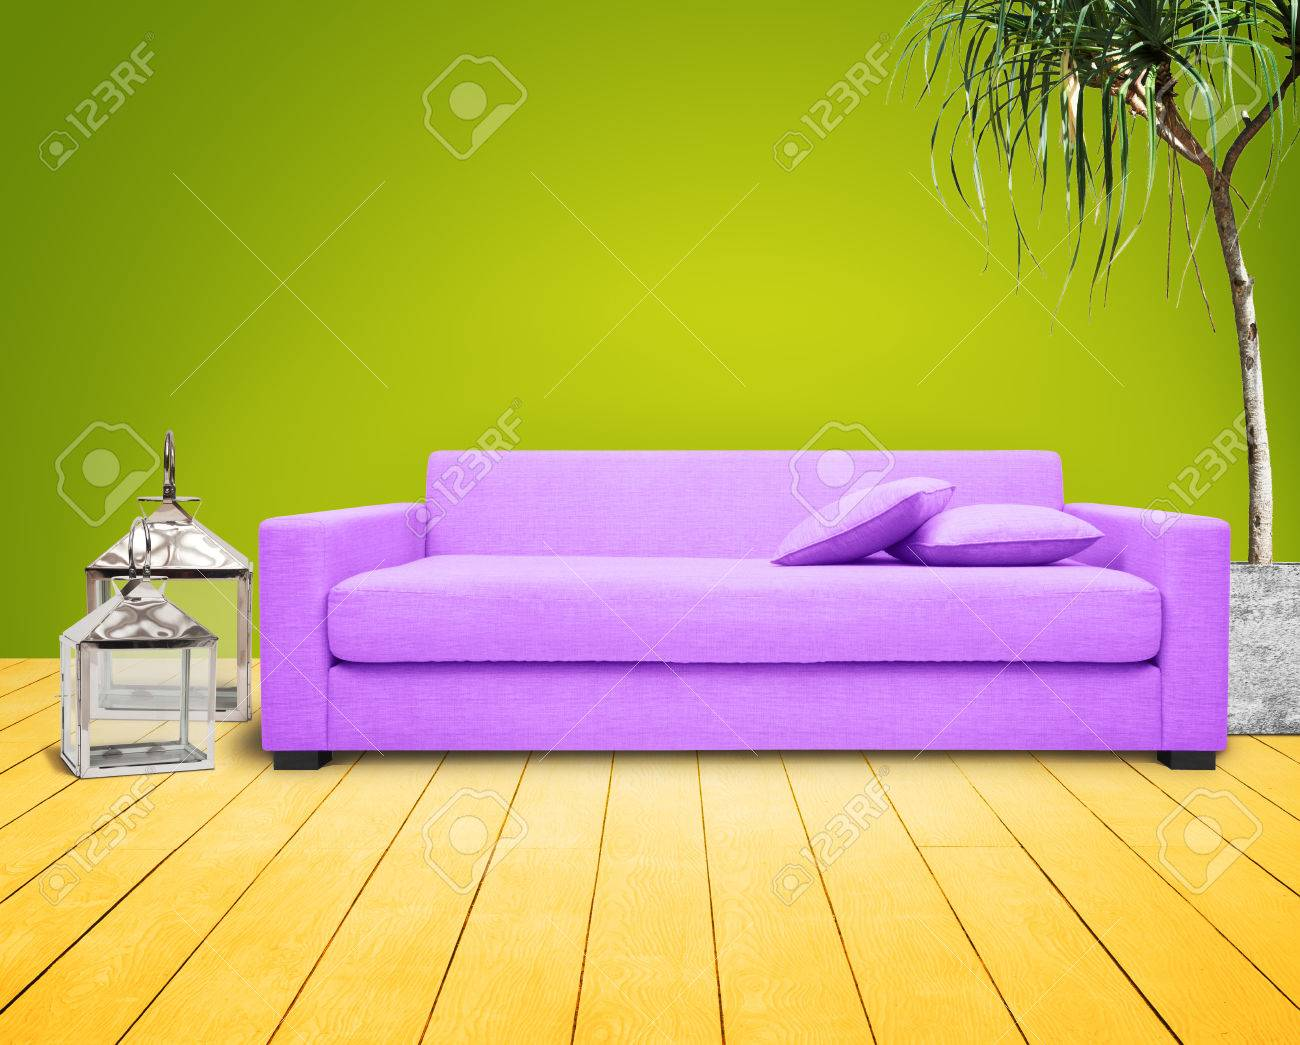 Living-room With Green Wall And Purple Couch. Stock Photo - 23879417